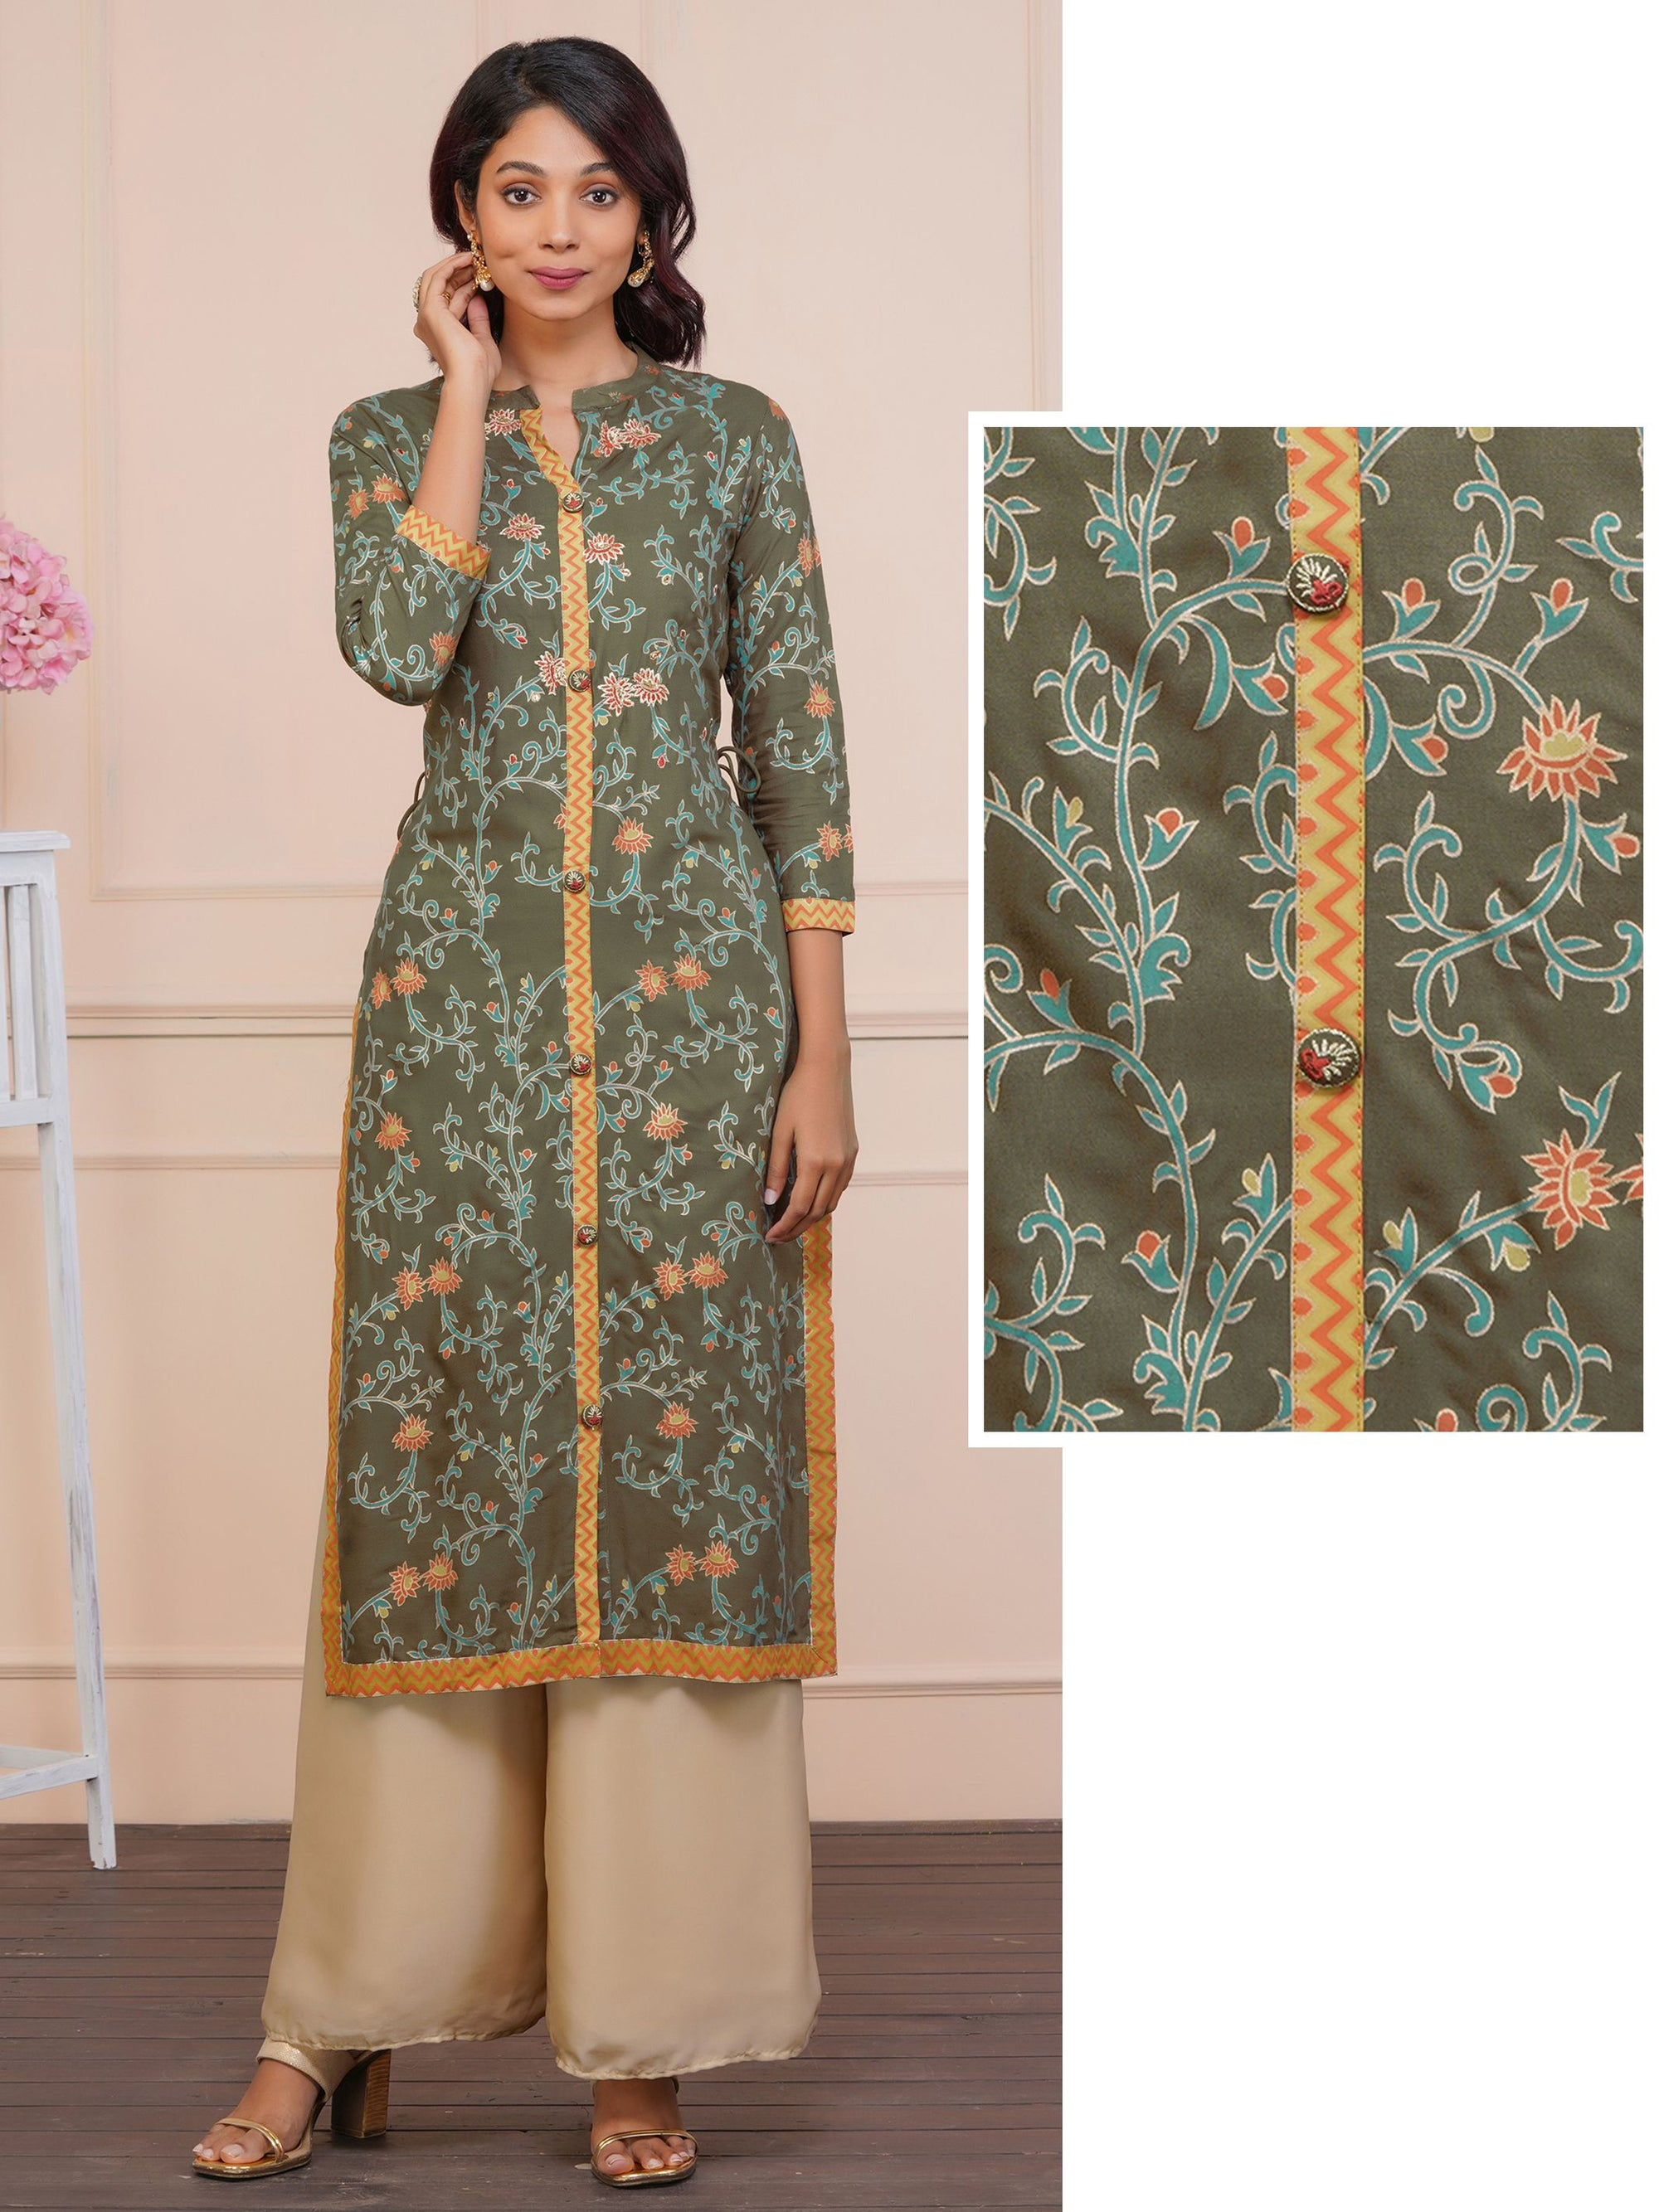 Zari Embroidery And Floral Gold Highlights Kurta